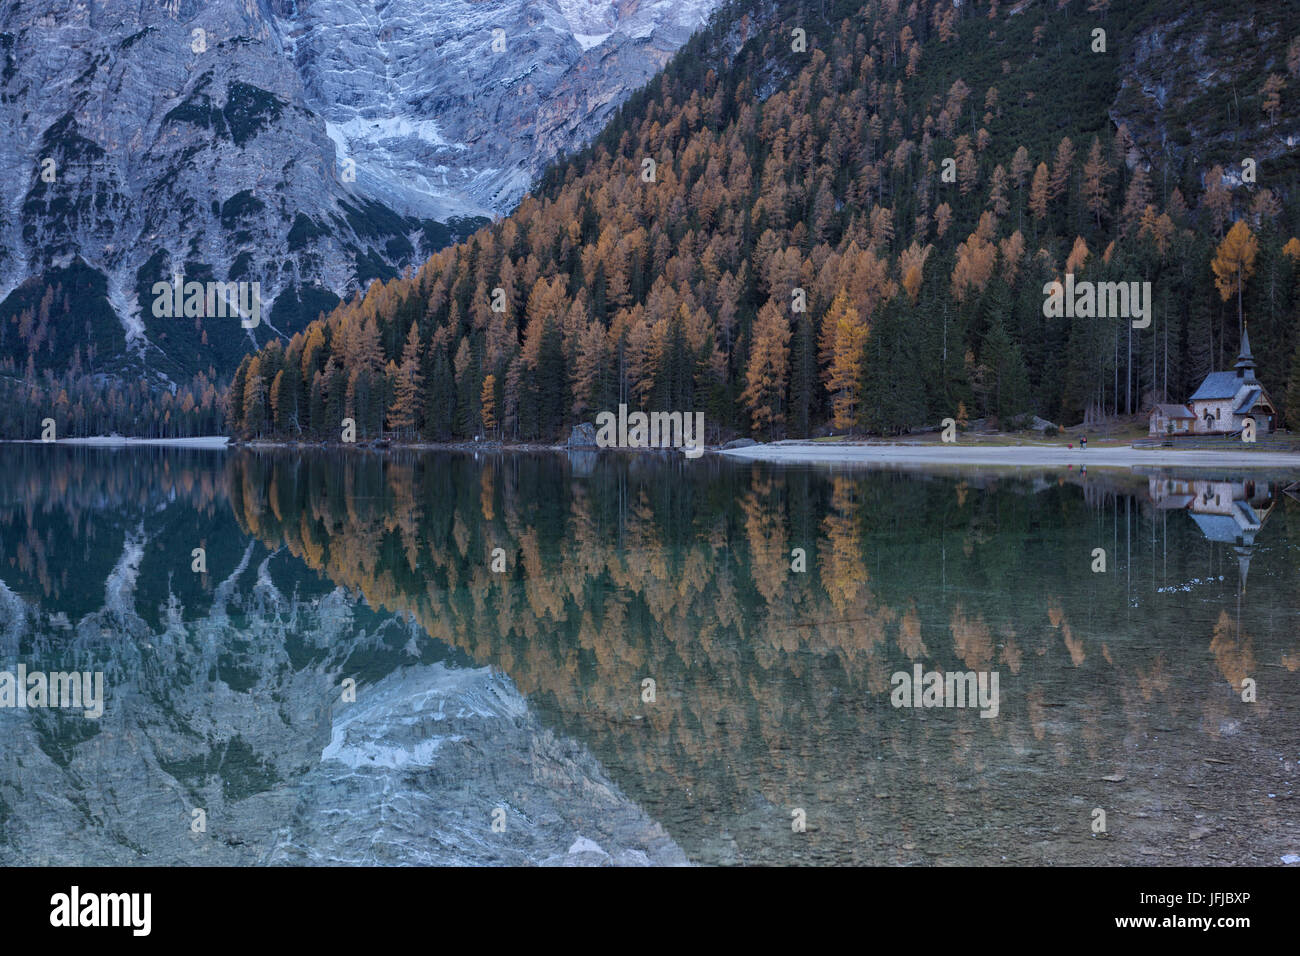 Europe, Italy, Trentino Alto Adige, Bolzano district, Braies lake - Stock Image